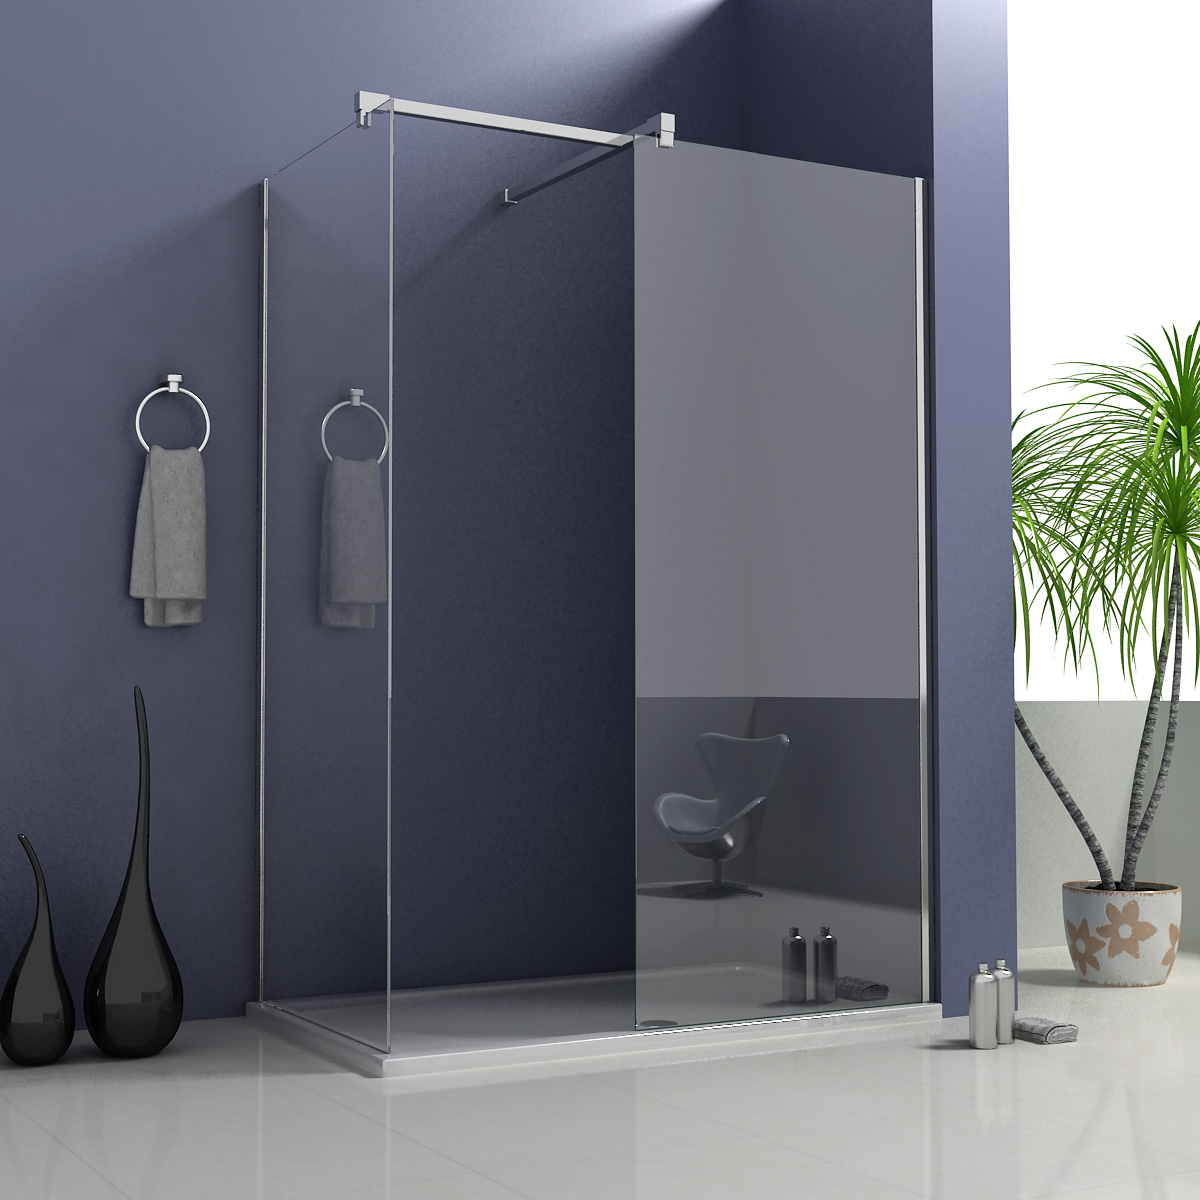 1950mm Walk in Wet Room Shower Enclosure Screen Cubicle Stone Tray ...